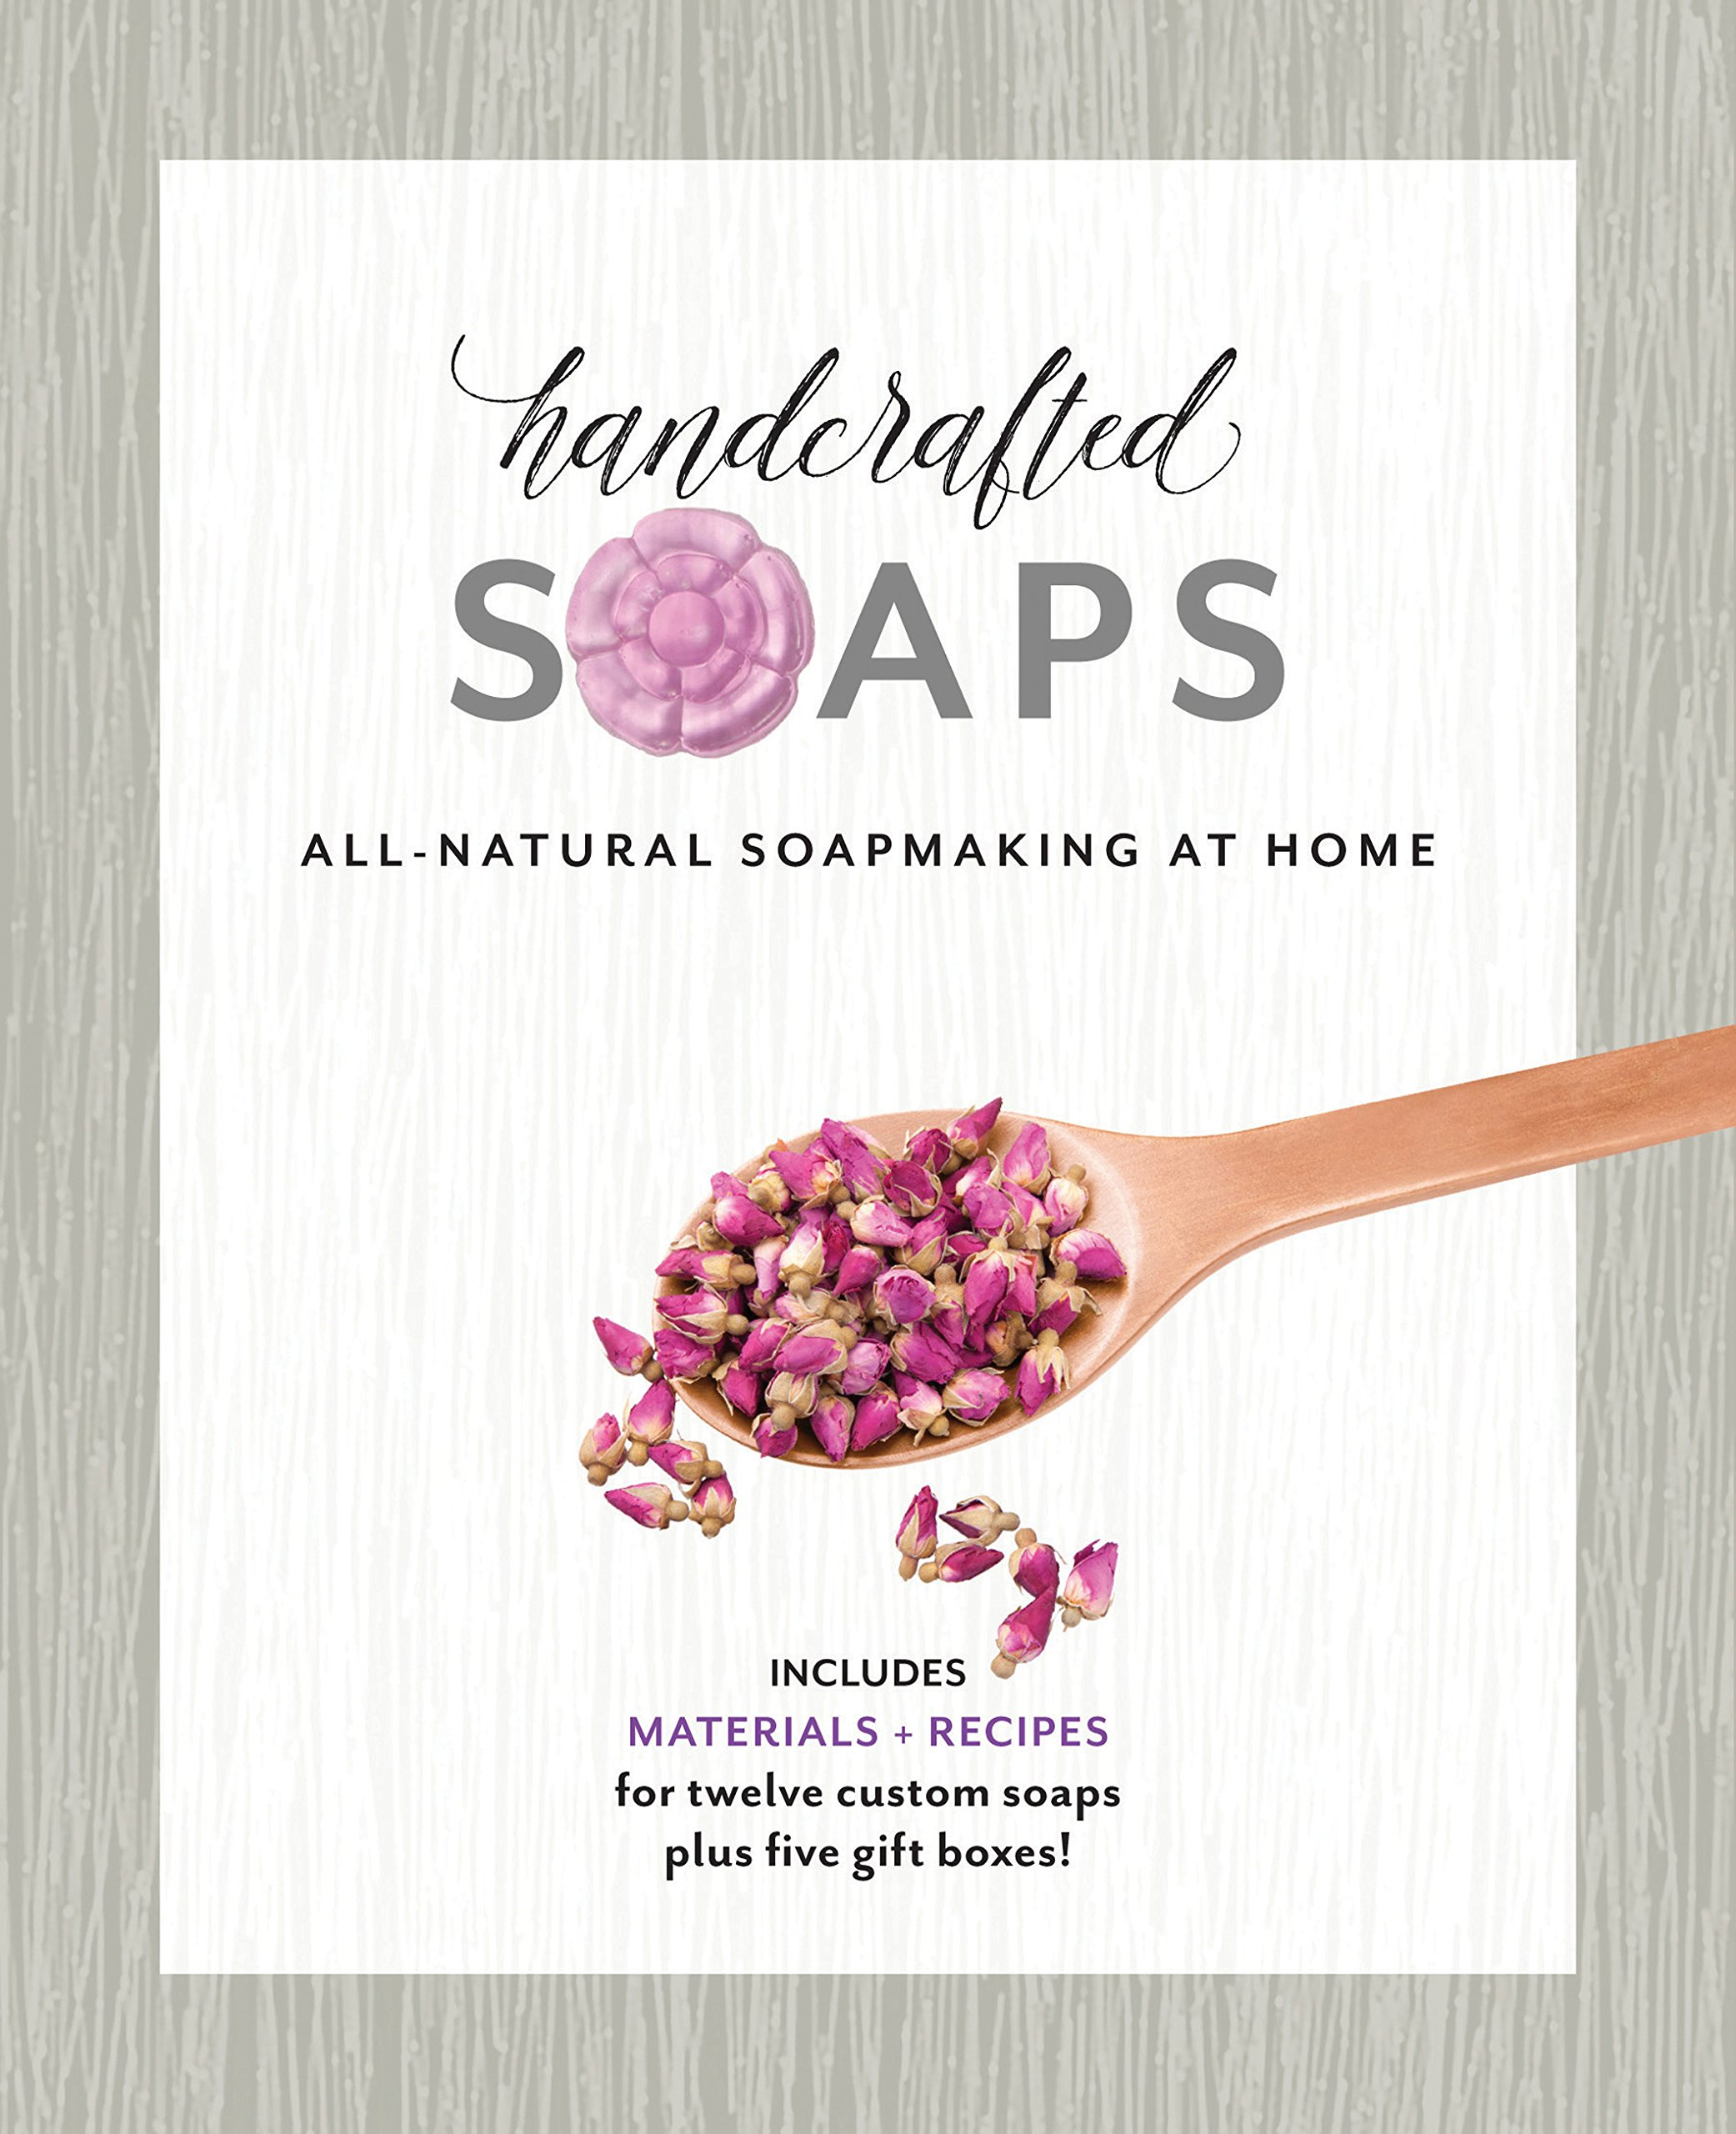 handcrafted-soaps-all-natural-soapmaking-at-home